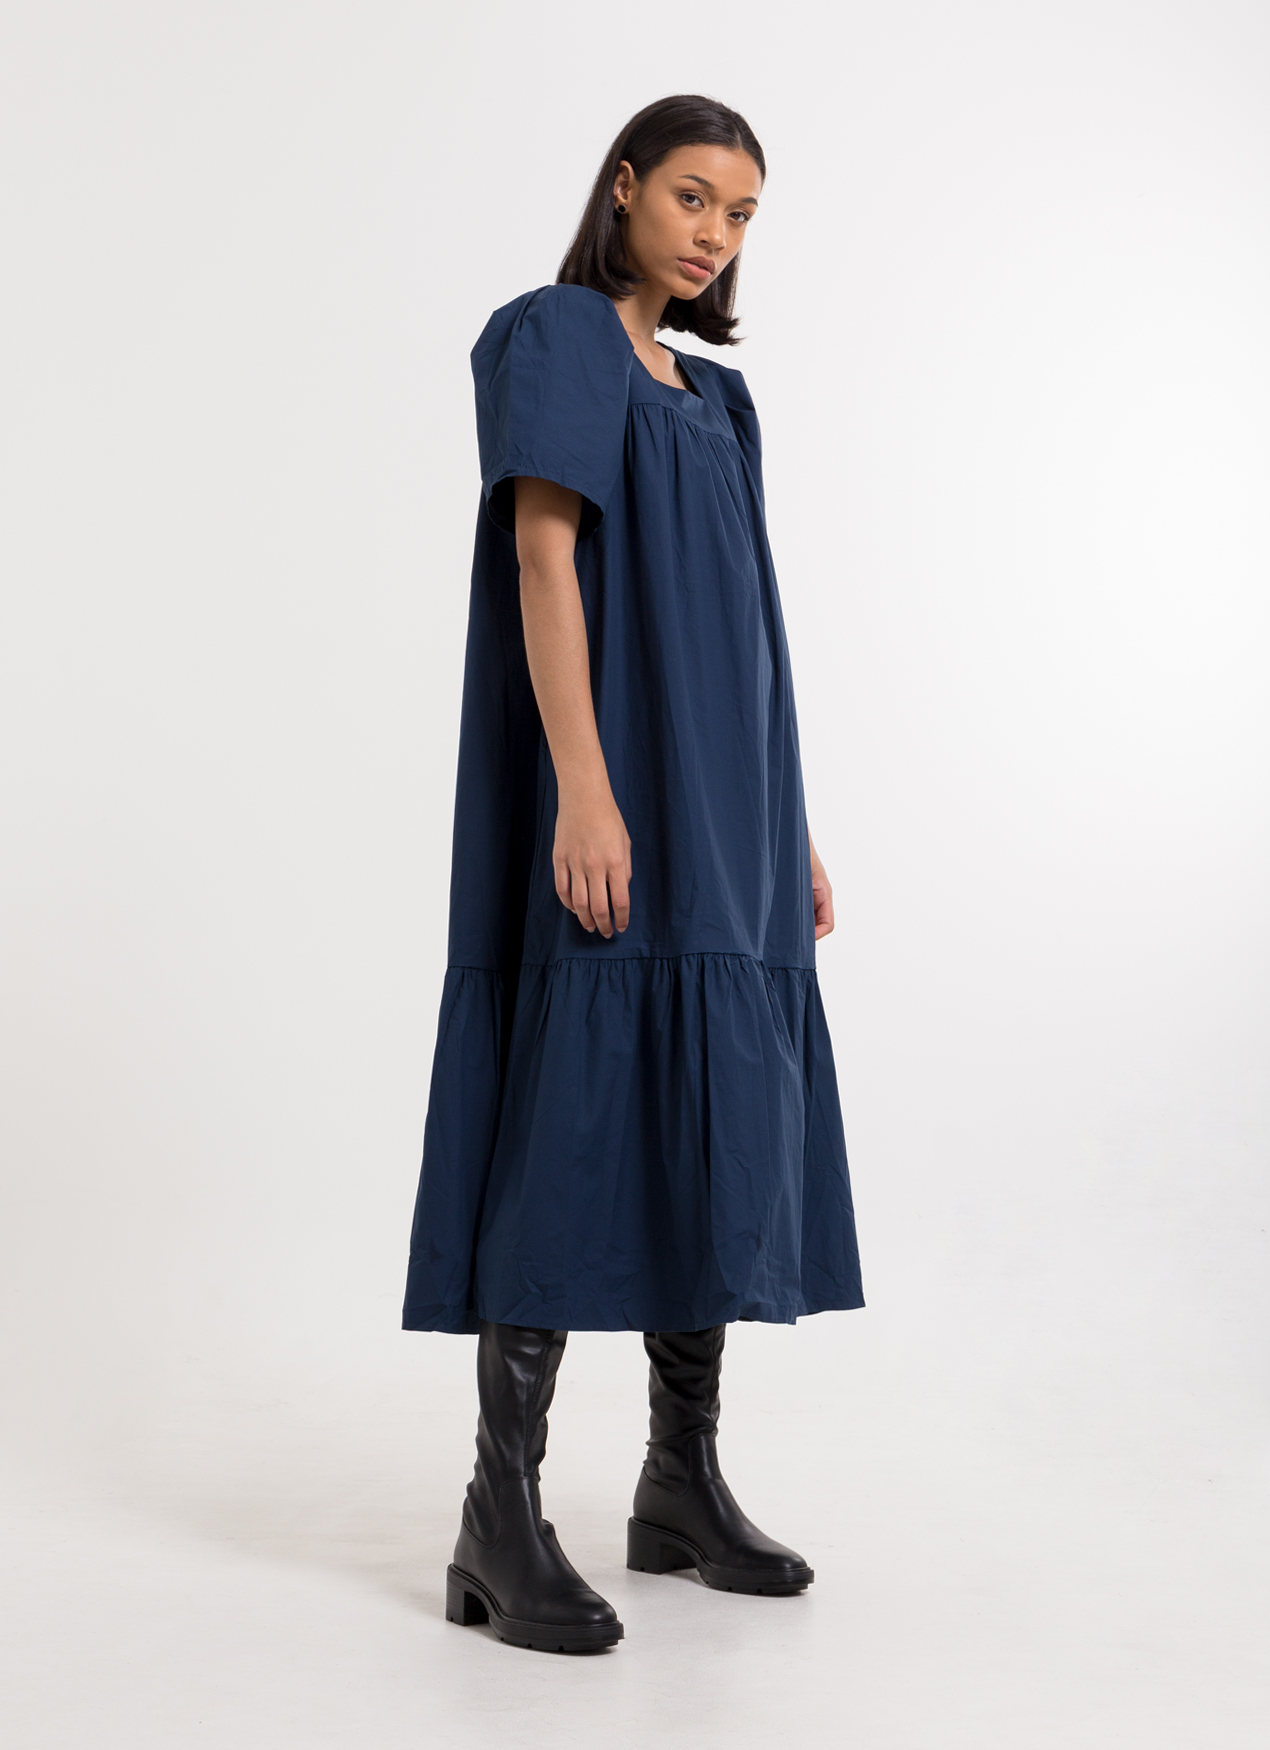 BOWN Aglaia Dress - Navy